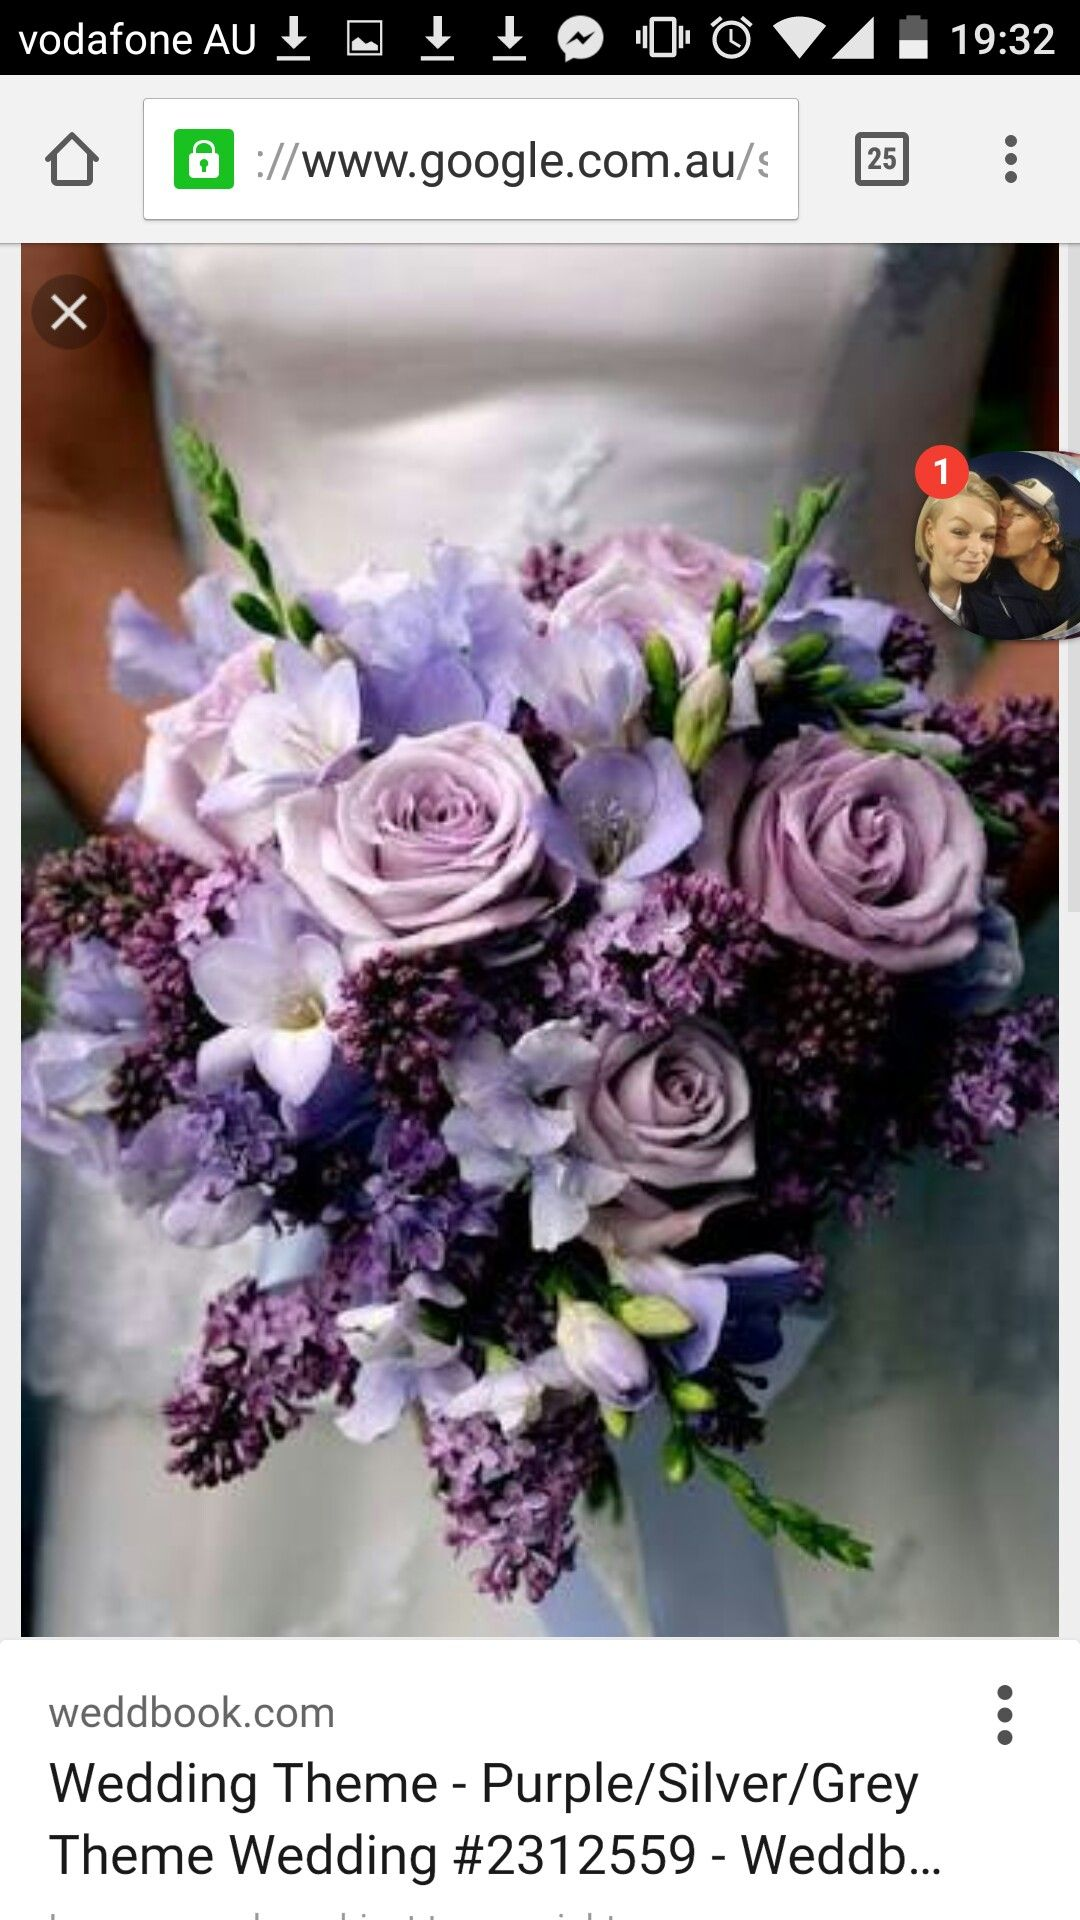 For A Little Fl Inspiration Check Out Our Picks Of The Most Gorgeous Purple Wedding Bouquets